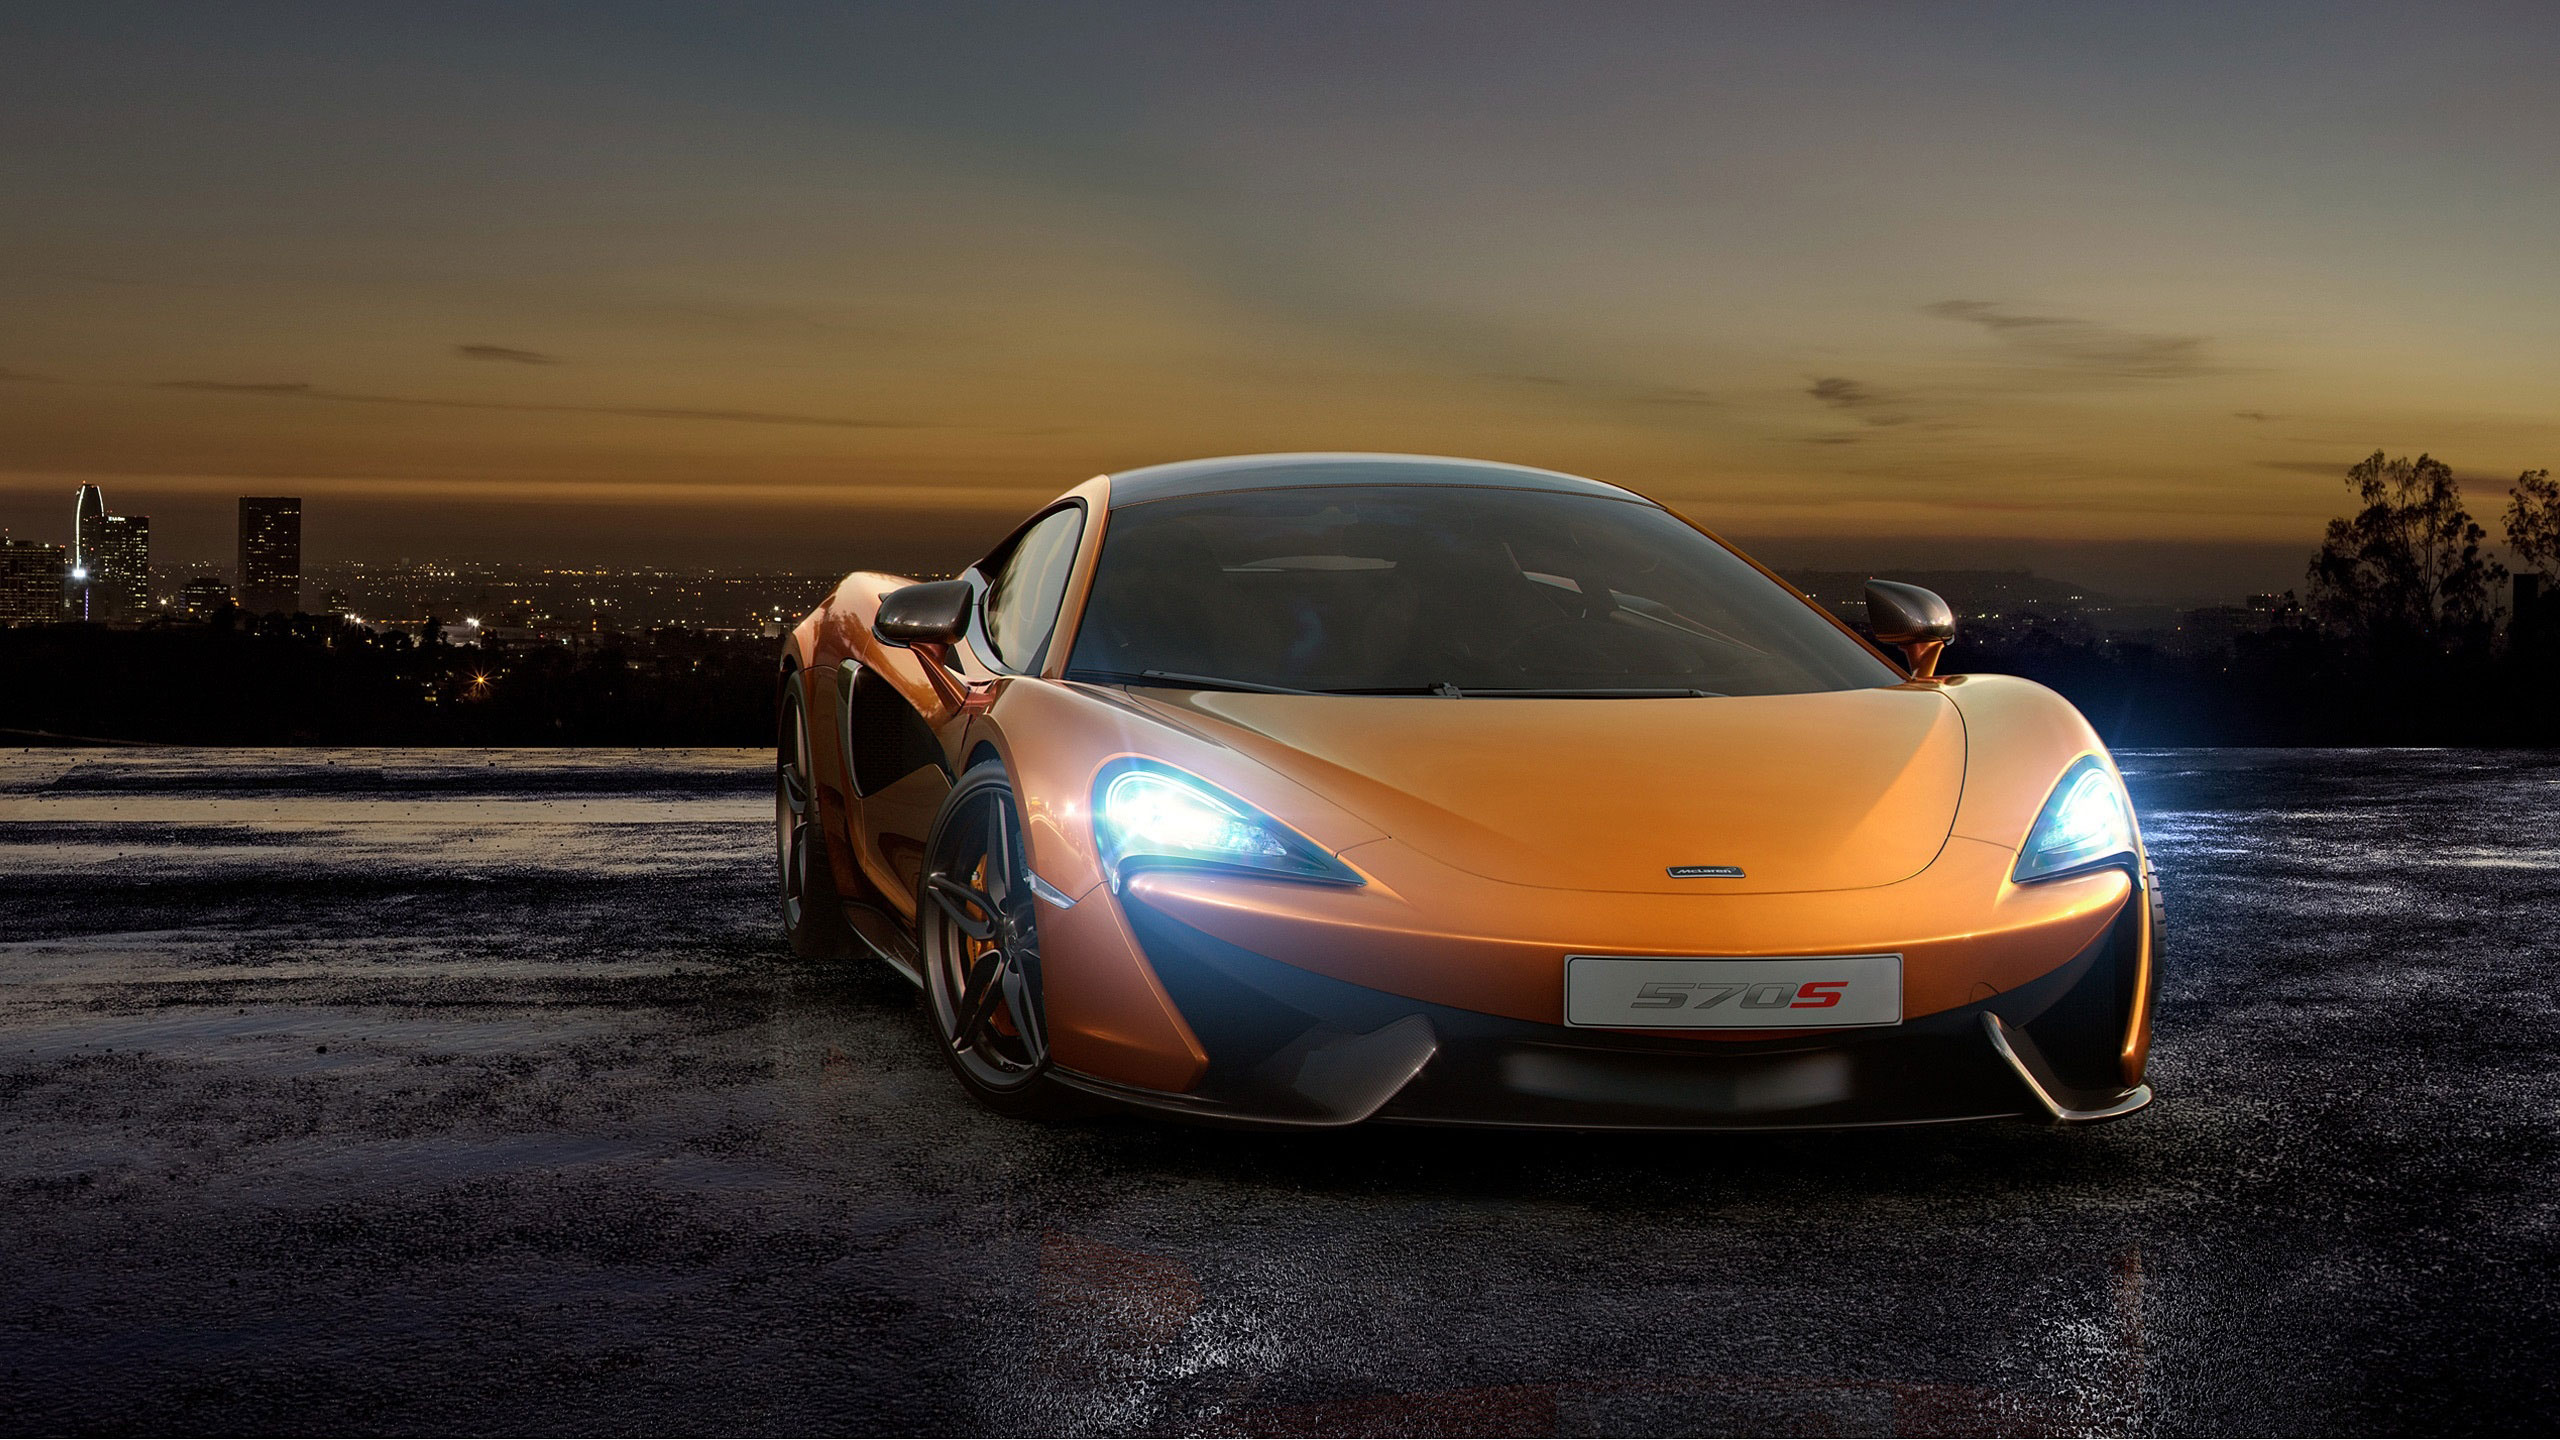 Car Wallpaper Wallpapers For Free Download About Wallpapers Car